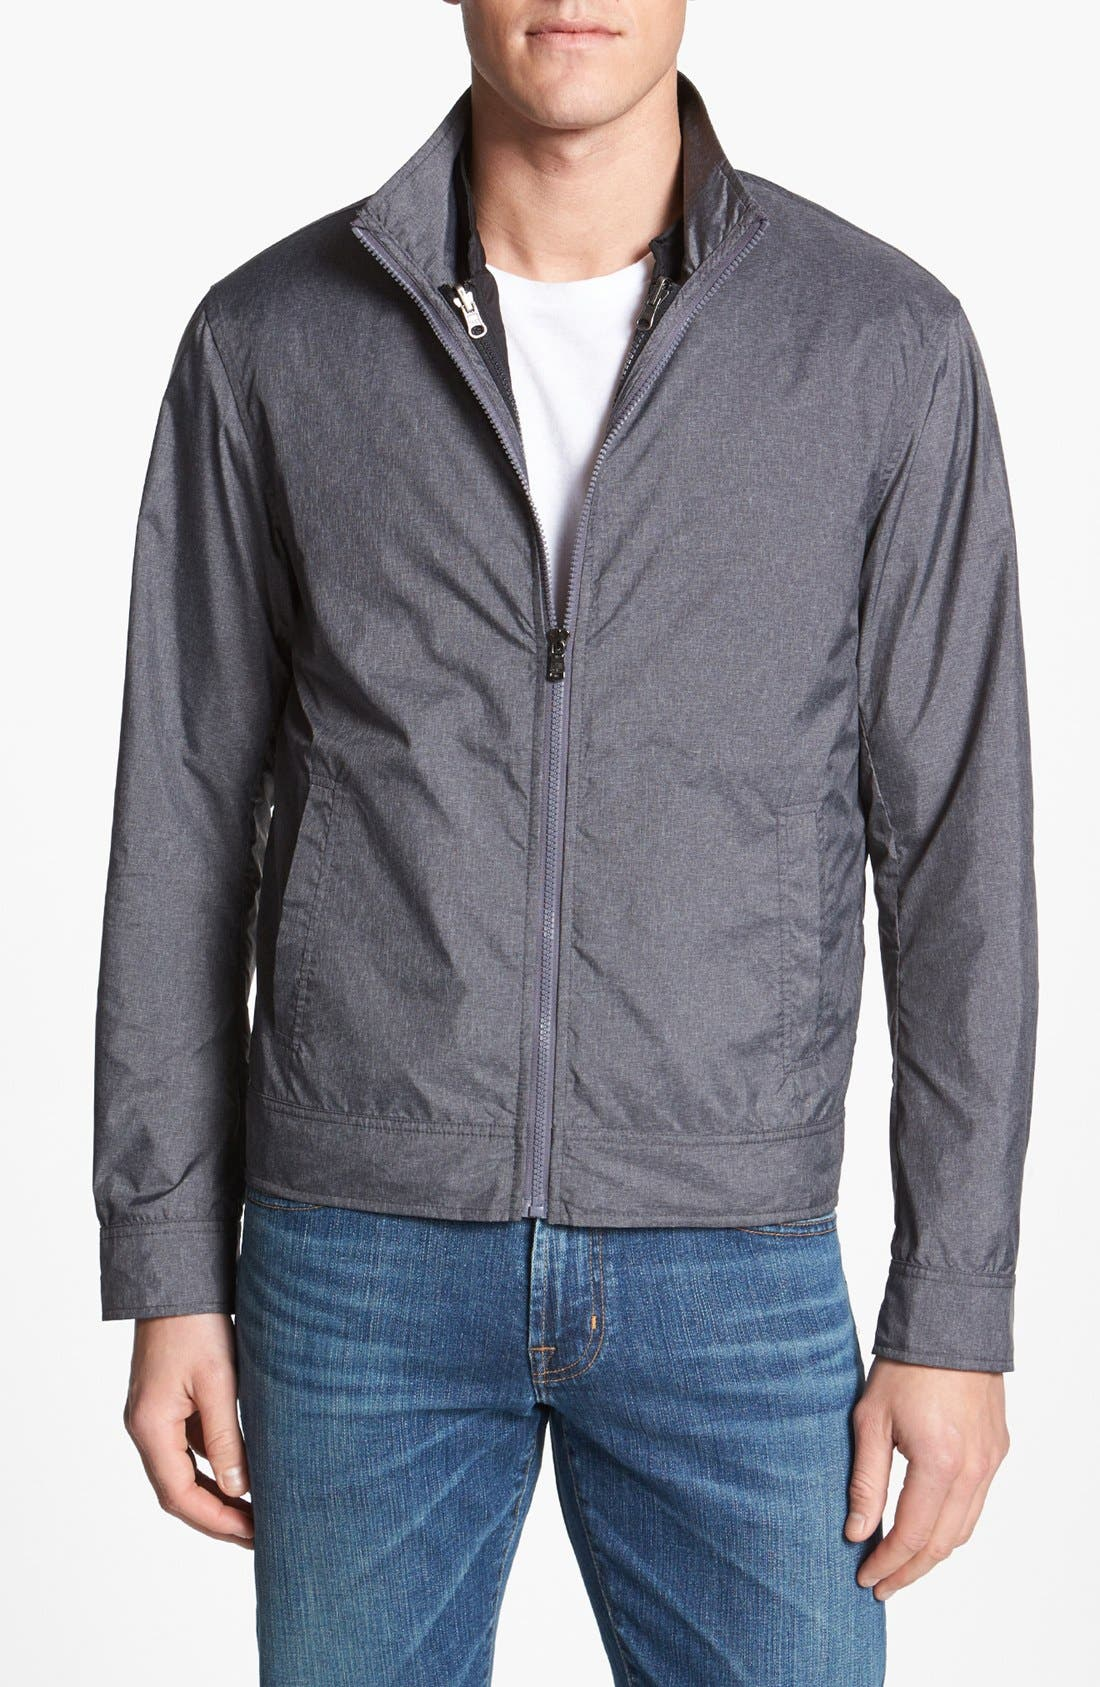 Alternate Image 1 Selected - Michael Kors Trim Fit 3-in-1 Jacket